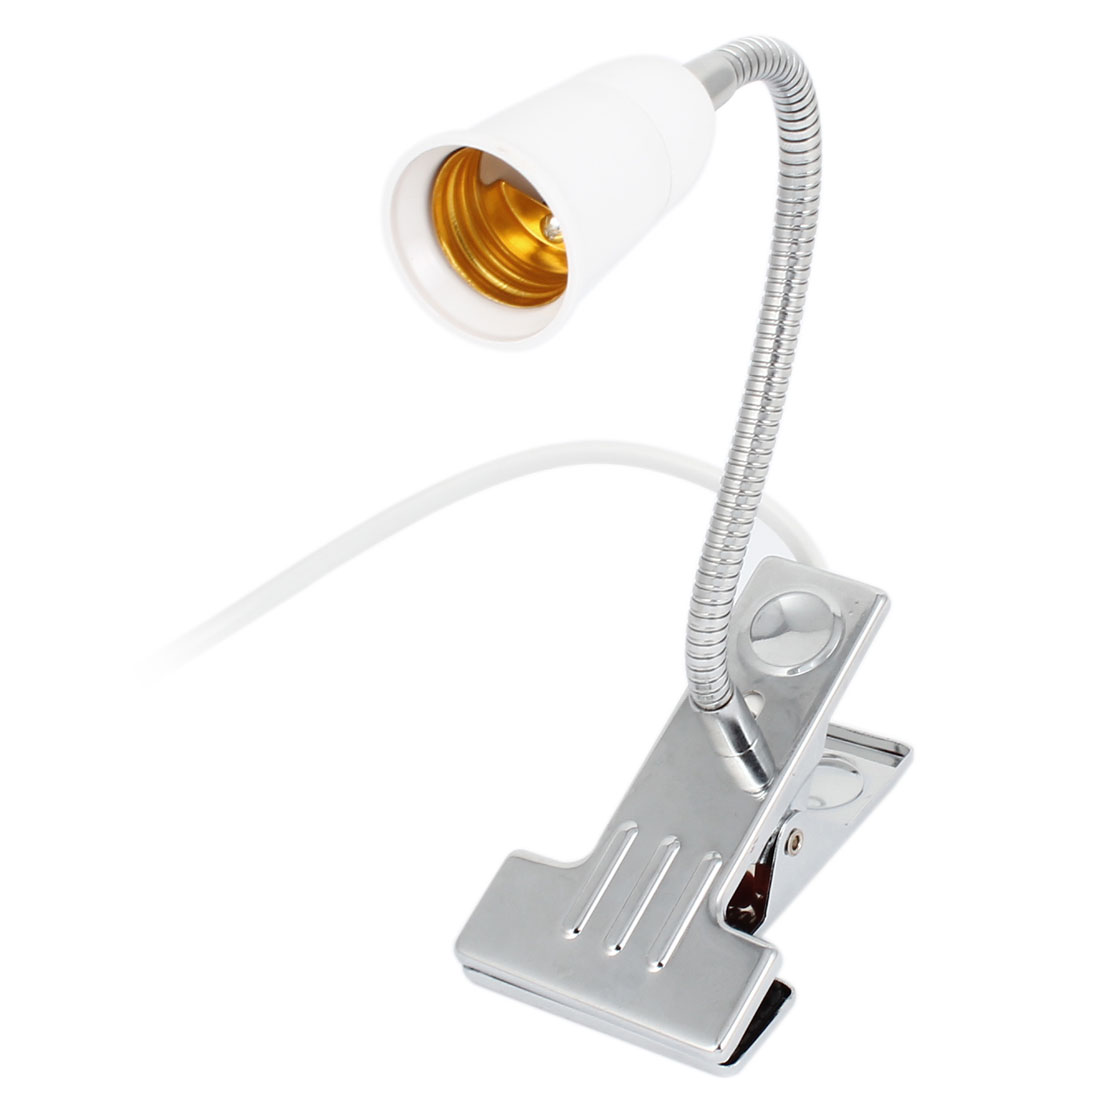 AC 110-220V US Plug Flexible Neck E27 Screw Socket Desk Lamp Light Holder 30cm